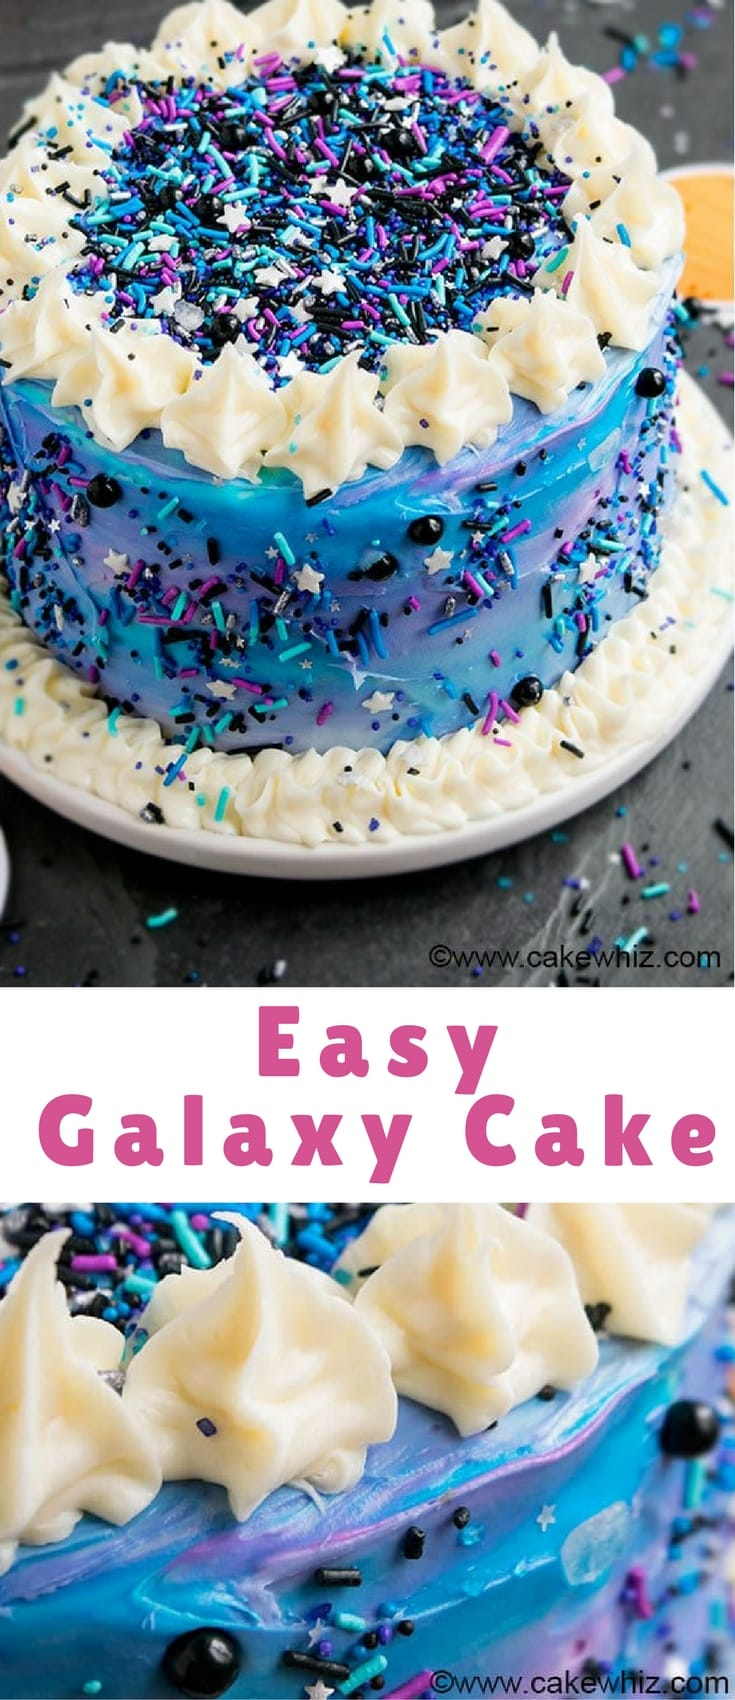 Quick and easy DIY galaxy cake with lots of sprinkles. This galaxy birthday cake is fun, colorful and perfect for kids' space themed parties.